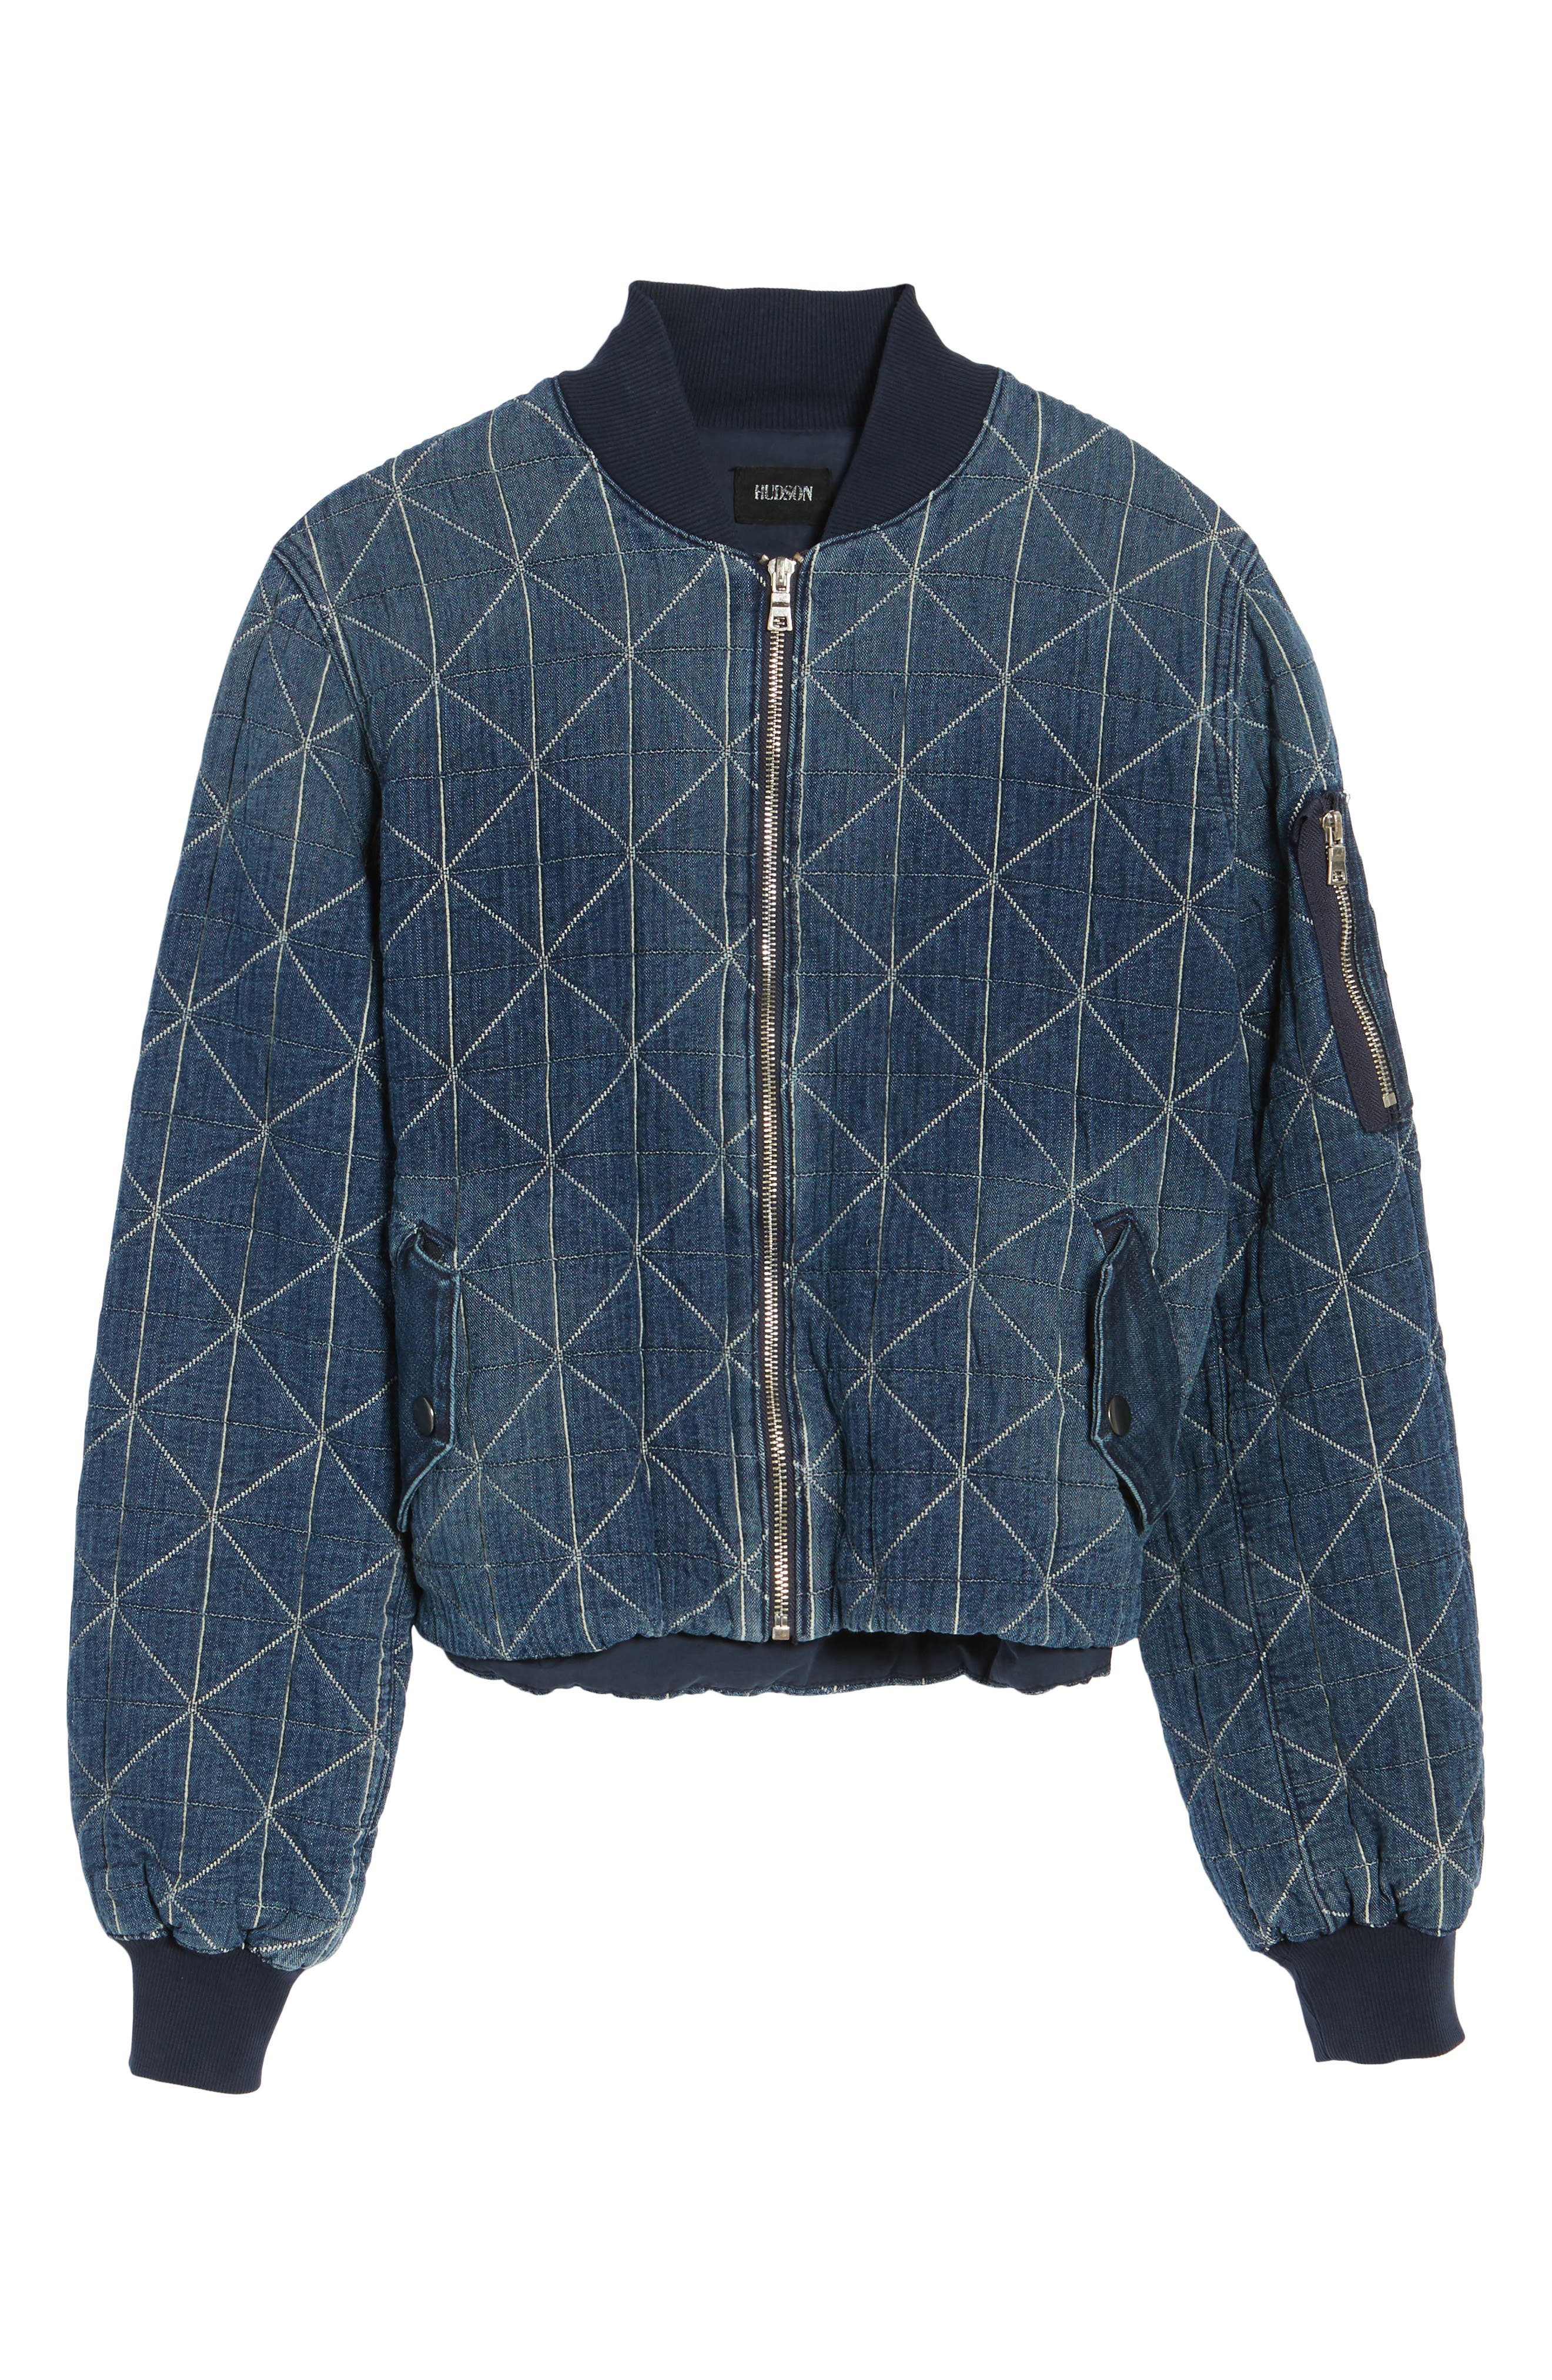 Gene Quilted Bomber Jacket,                             Alternate thumbnail 5, color,                             420